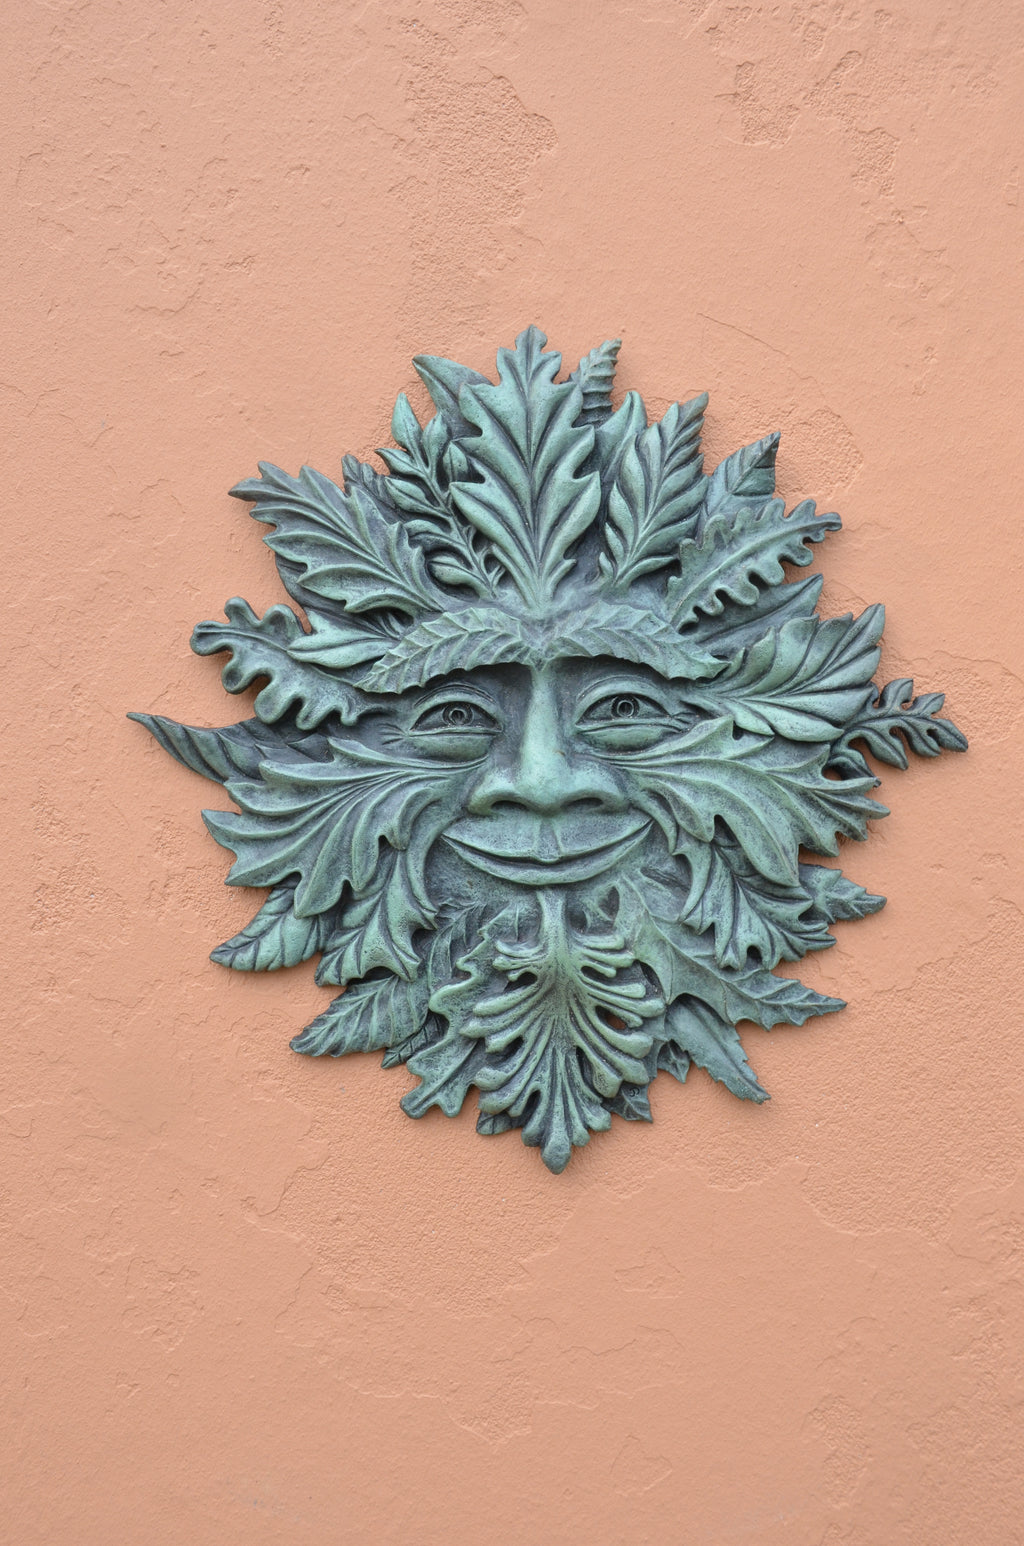 The Green Man - II - Limited Edition Bronze